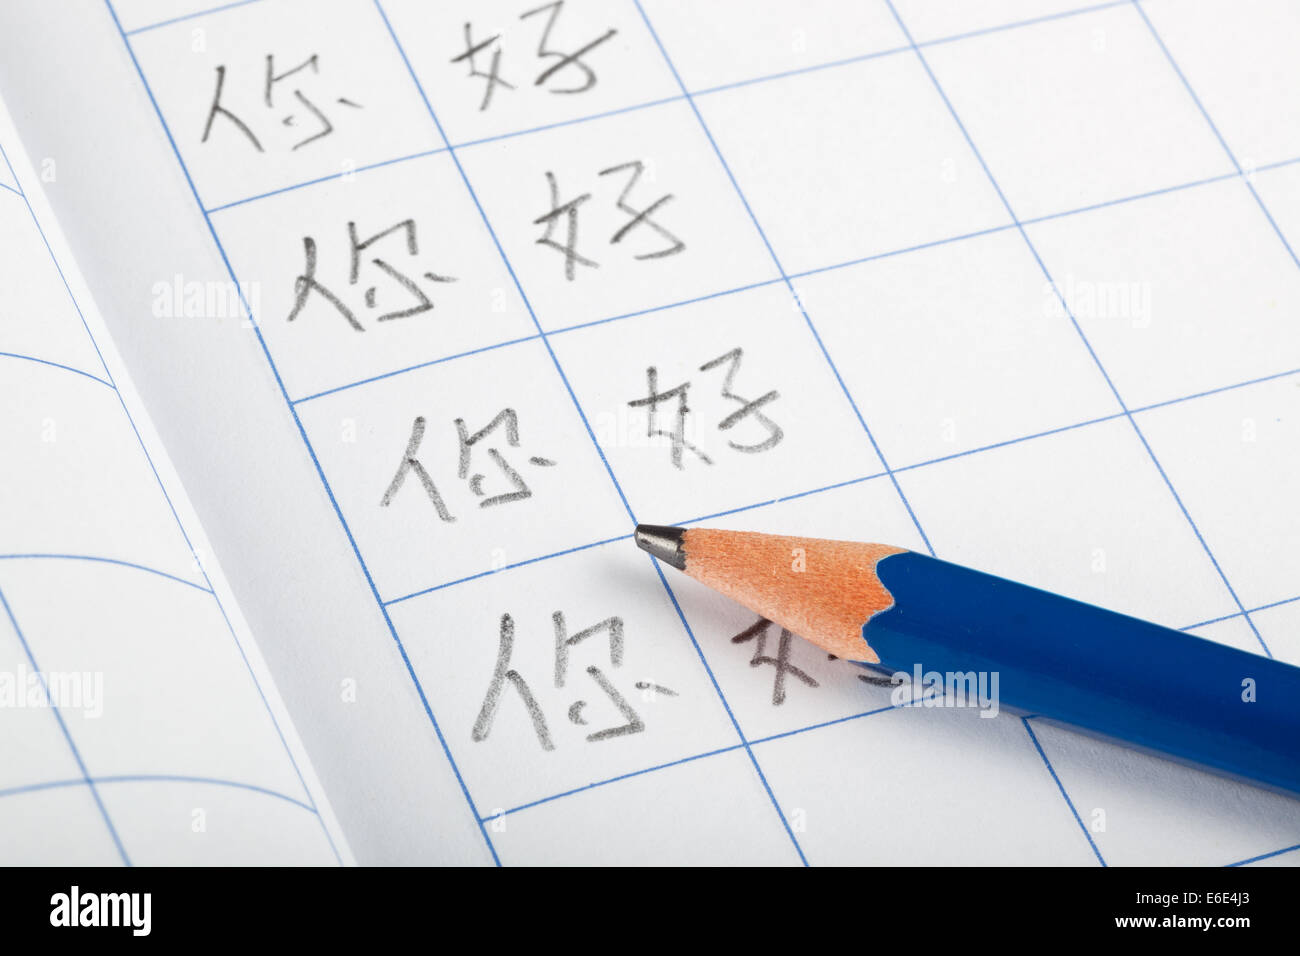 Practice Writing Hello In Chinese On A Worksheet Stock